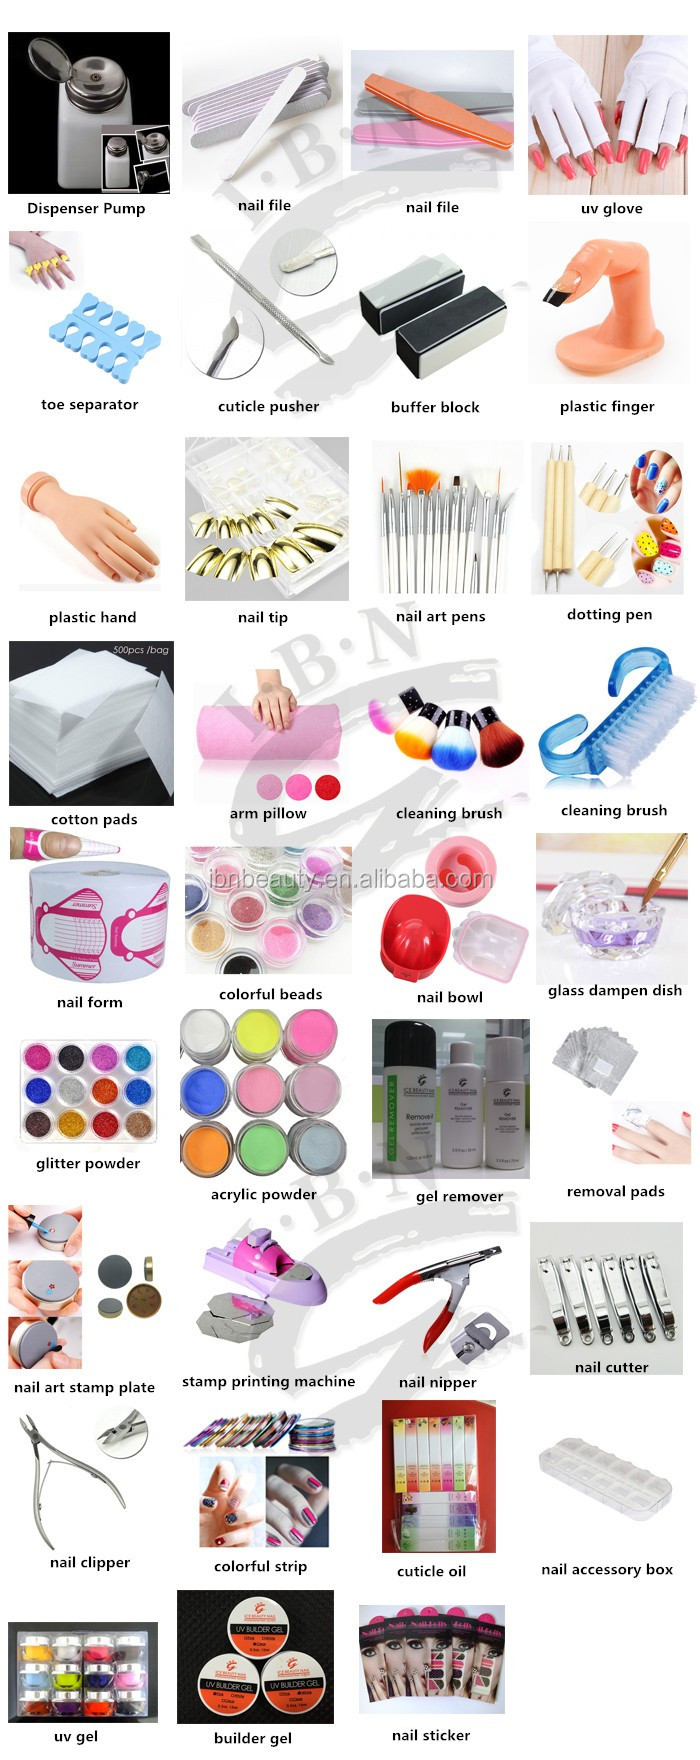 Painting Practice Tool Adjustable Nail Art Model Fake Hand For ...